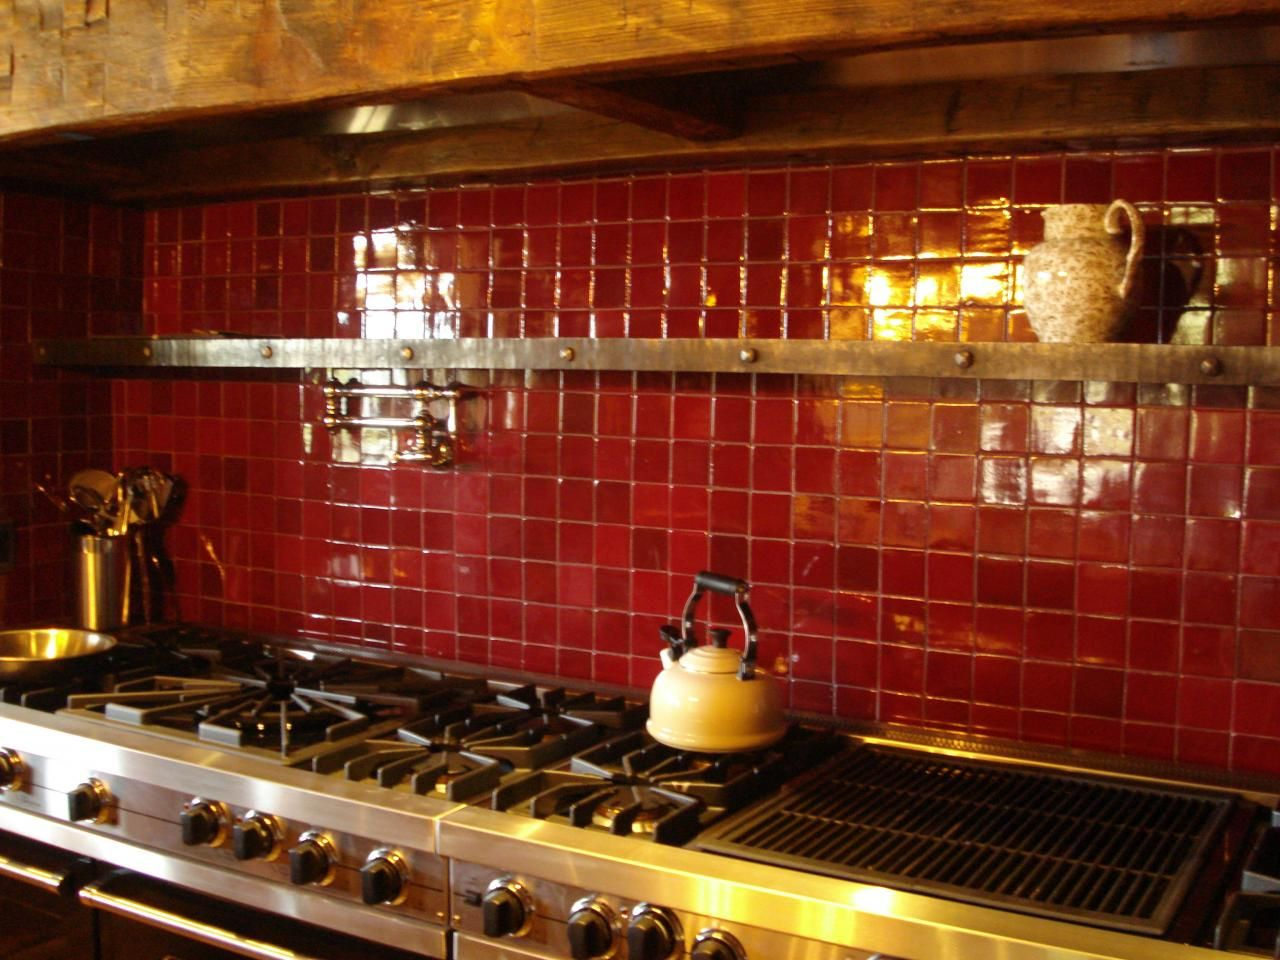 Kitchen Backsplash Red kitchen back splashes | kitchen remodel designs: red kitchen